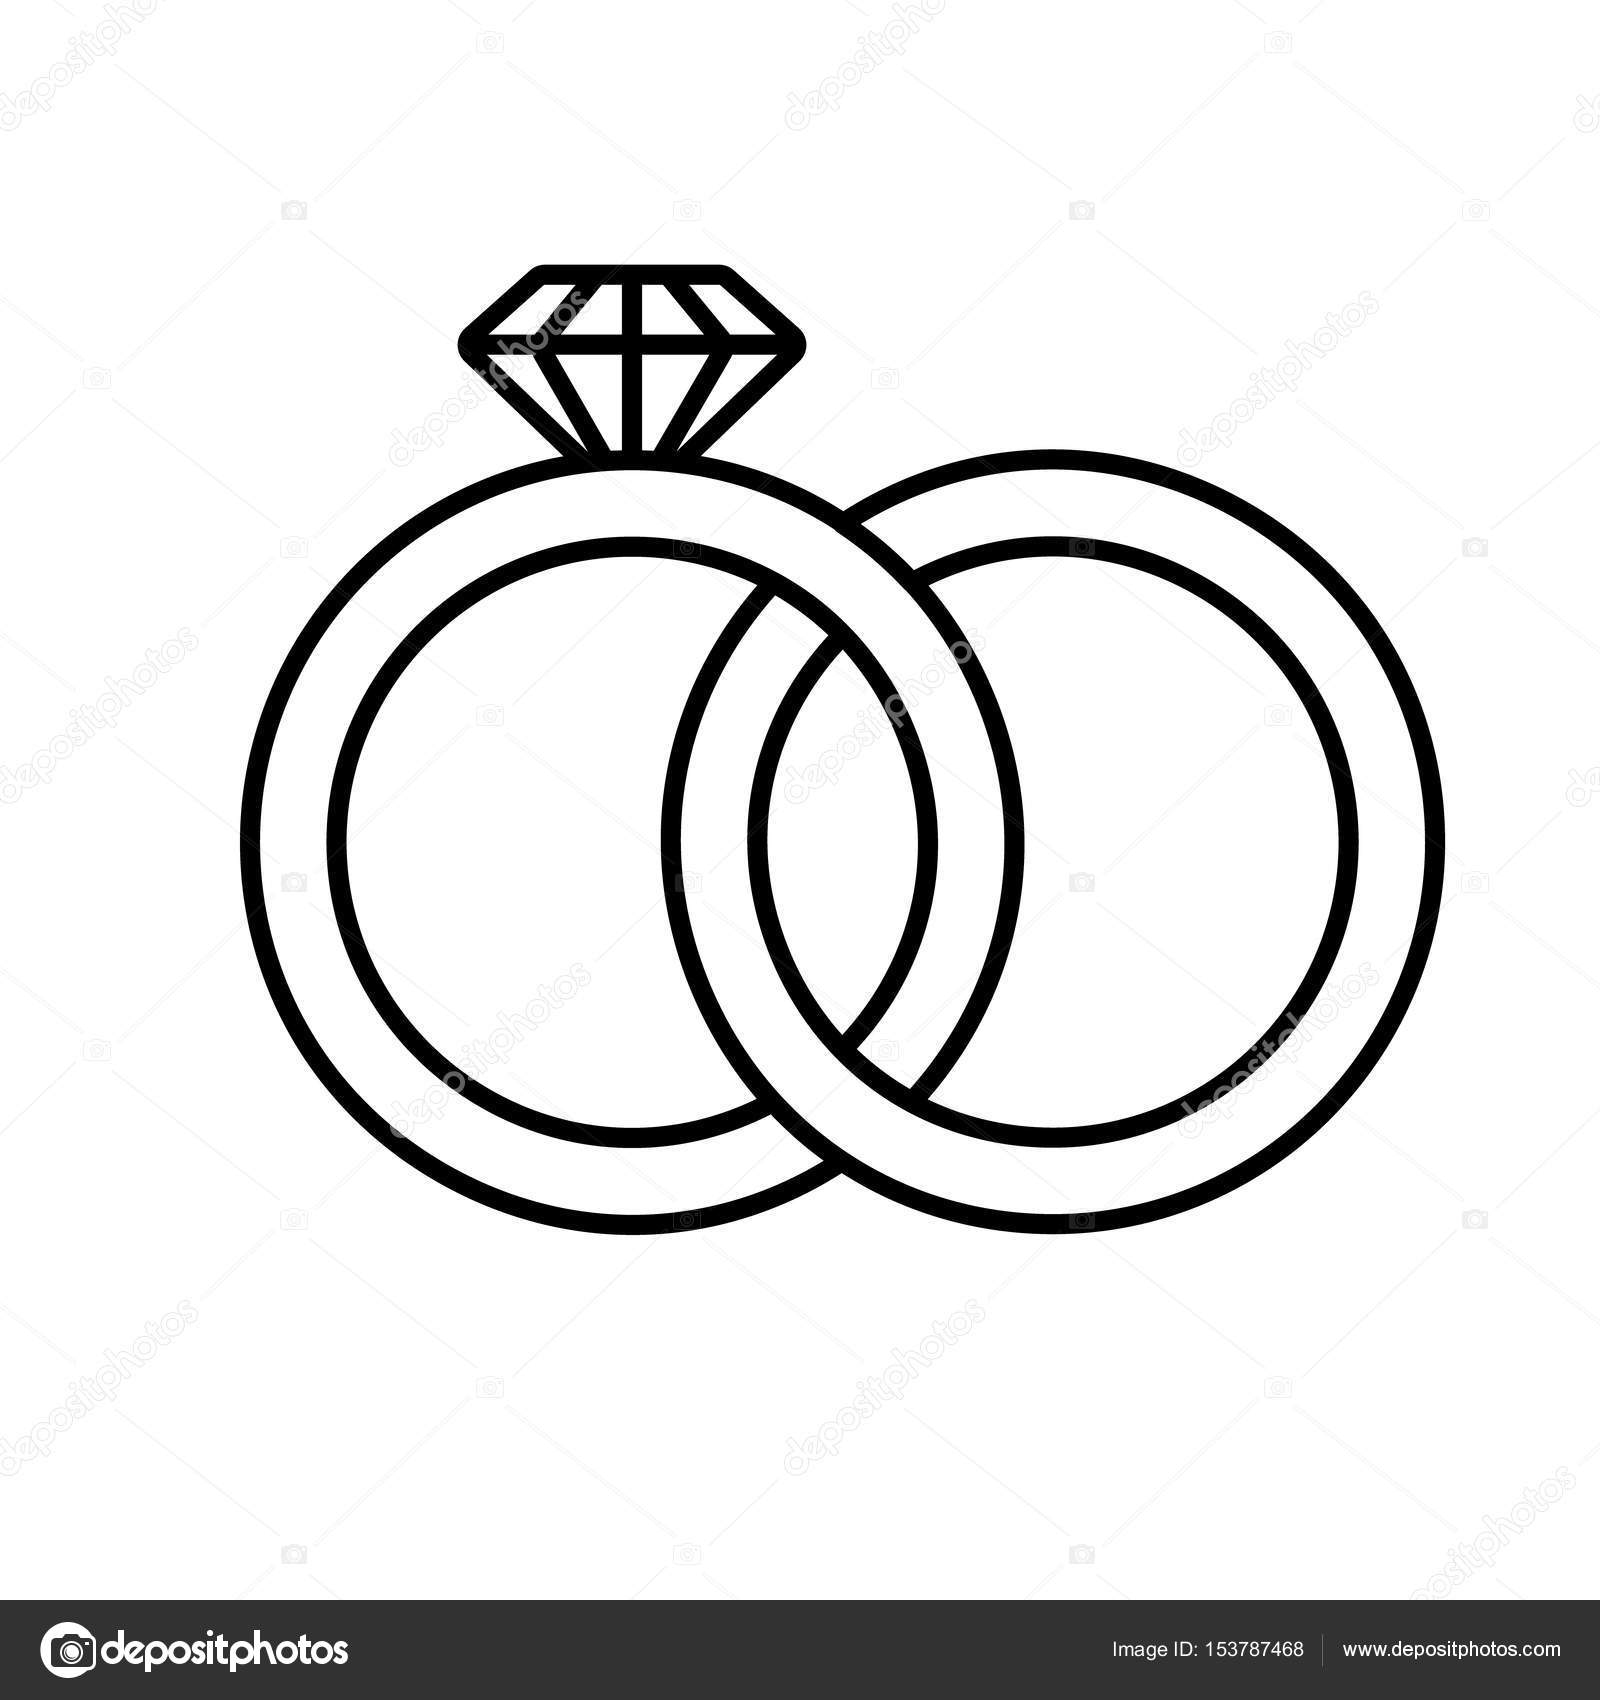 Clipart: how to draw interlocking wedding rings.